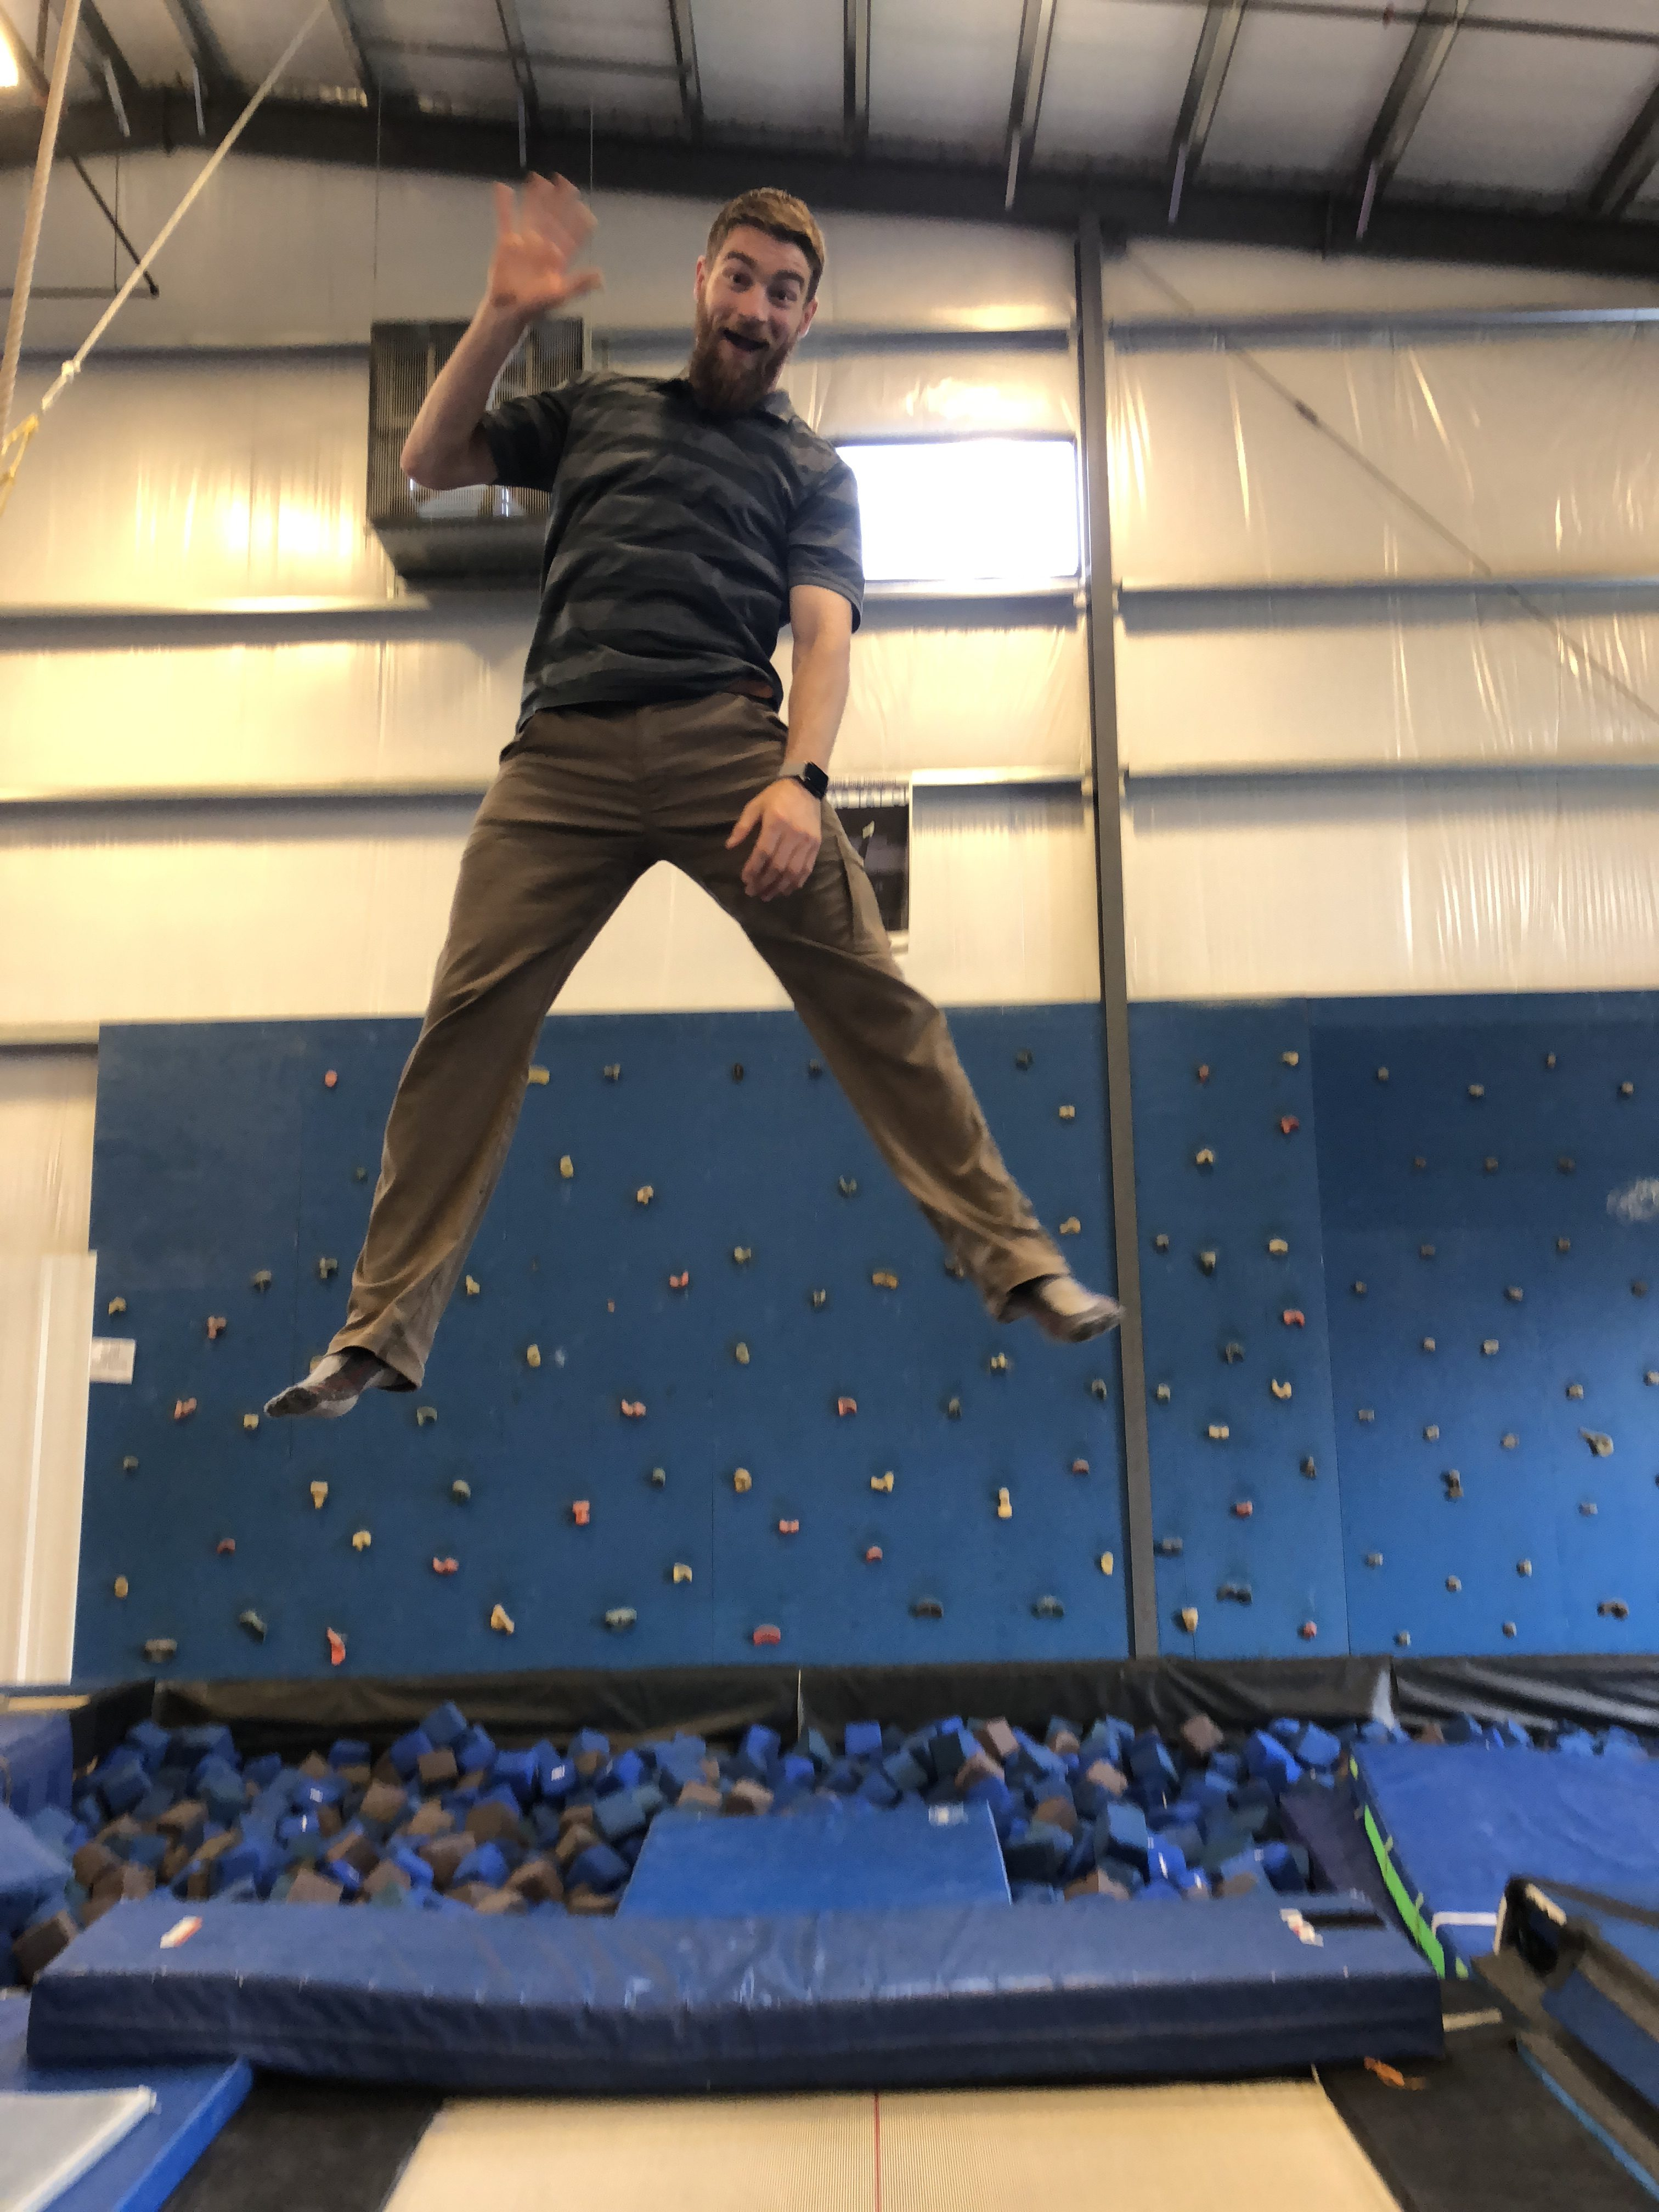 70f628f3e945 During his time as an officer and President of Texas A&M University's NAIGC  Gymnastics team, Jason fostered his leadership abilities and honed his ...